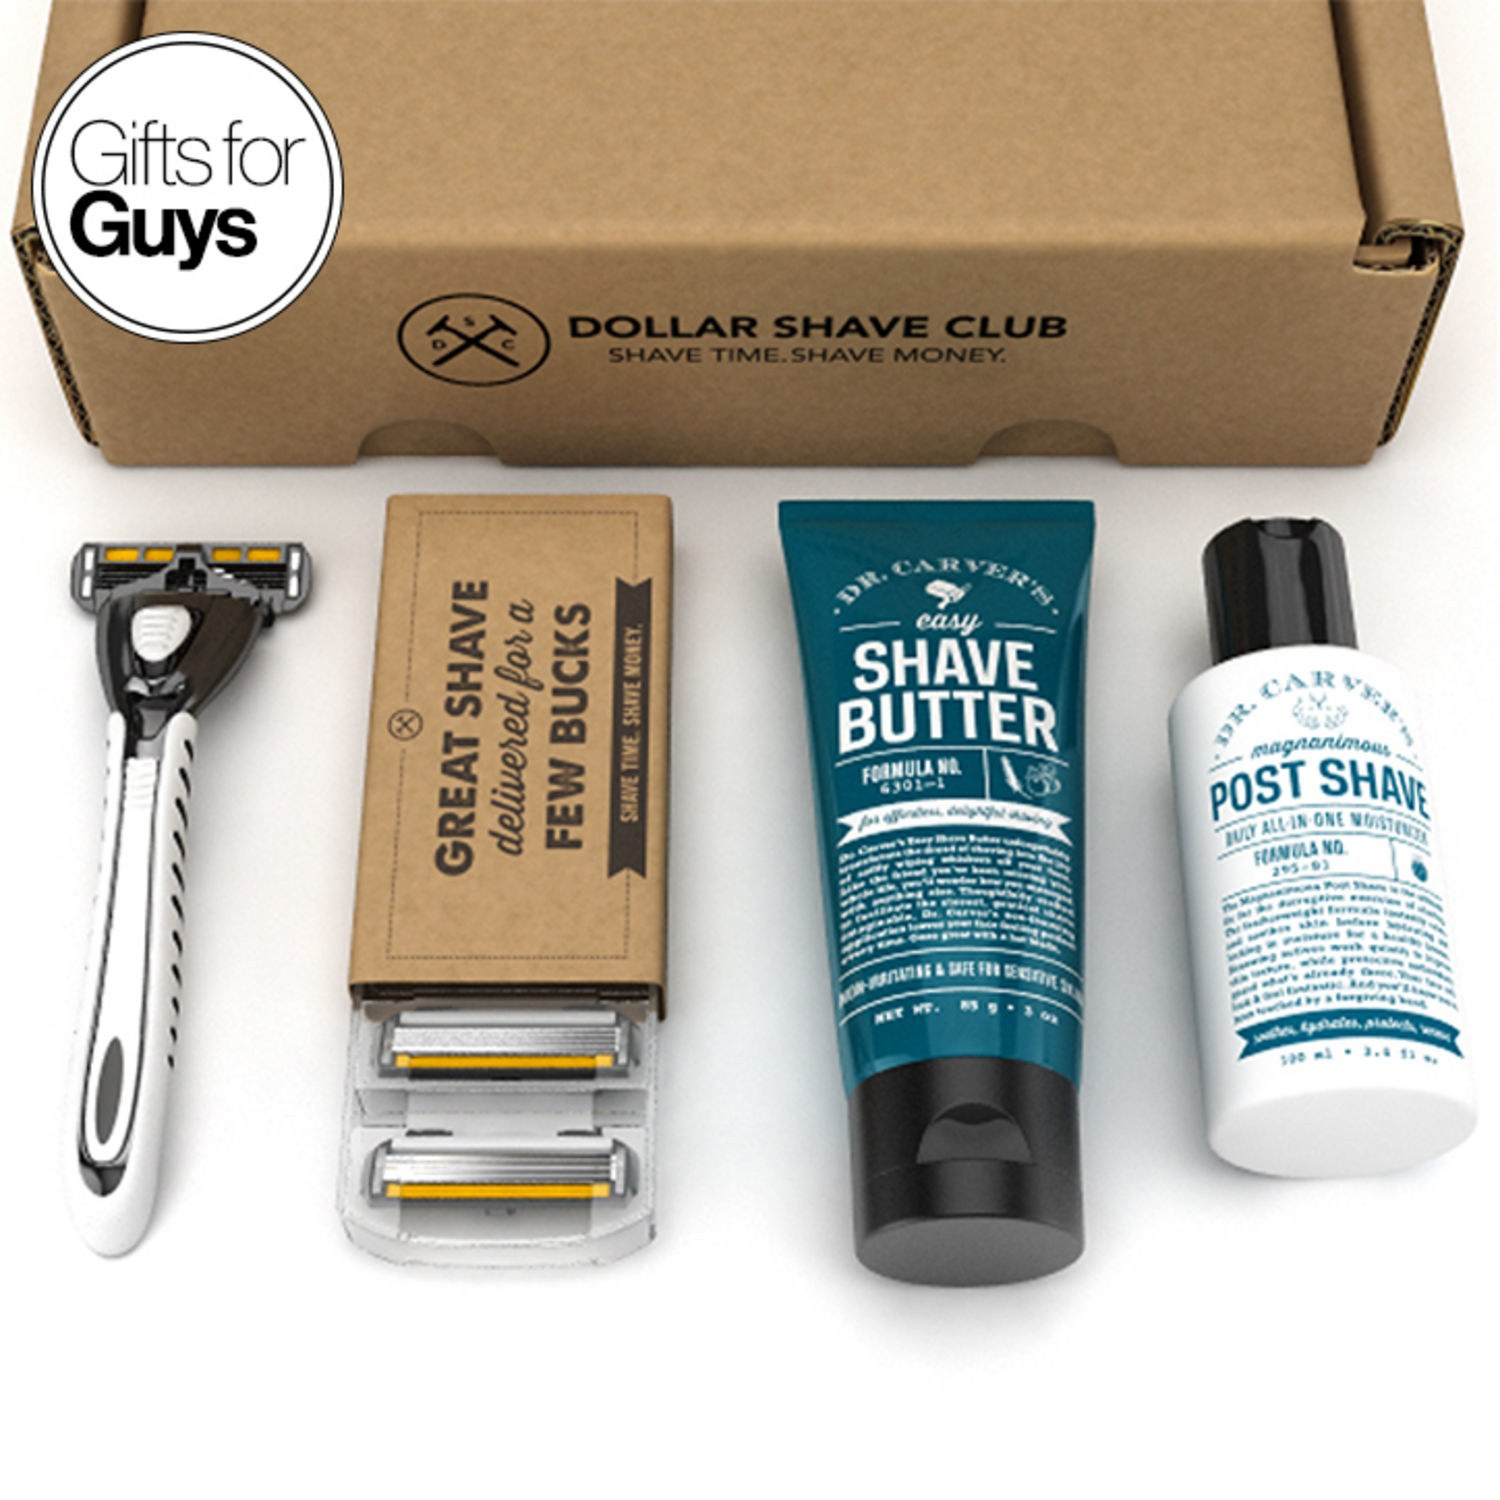 Best ideas about $10 Gift Ideas For Guys . Save or Pin Gift Ideas for Men Best Gifts for Guys Now.